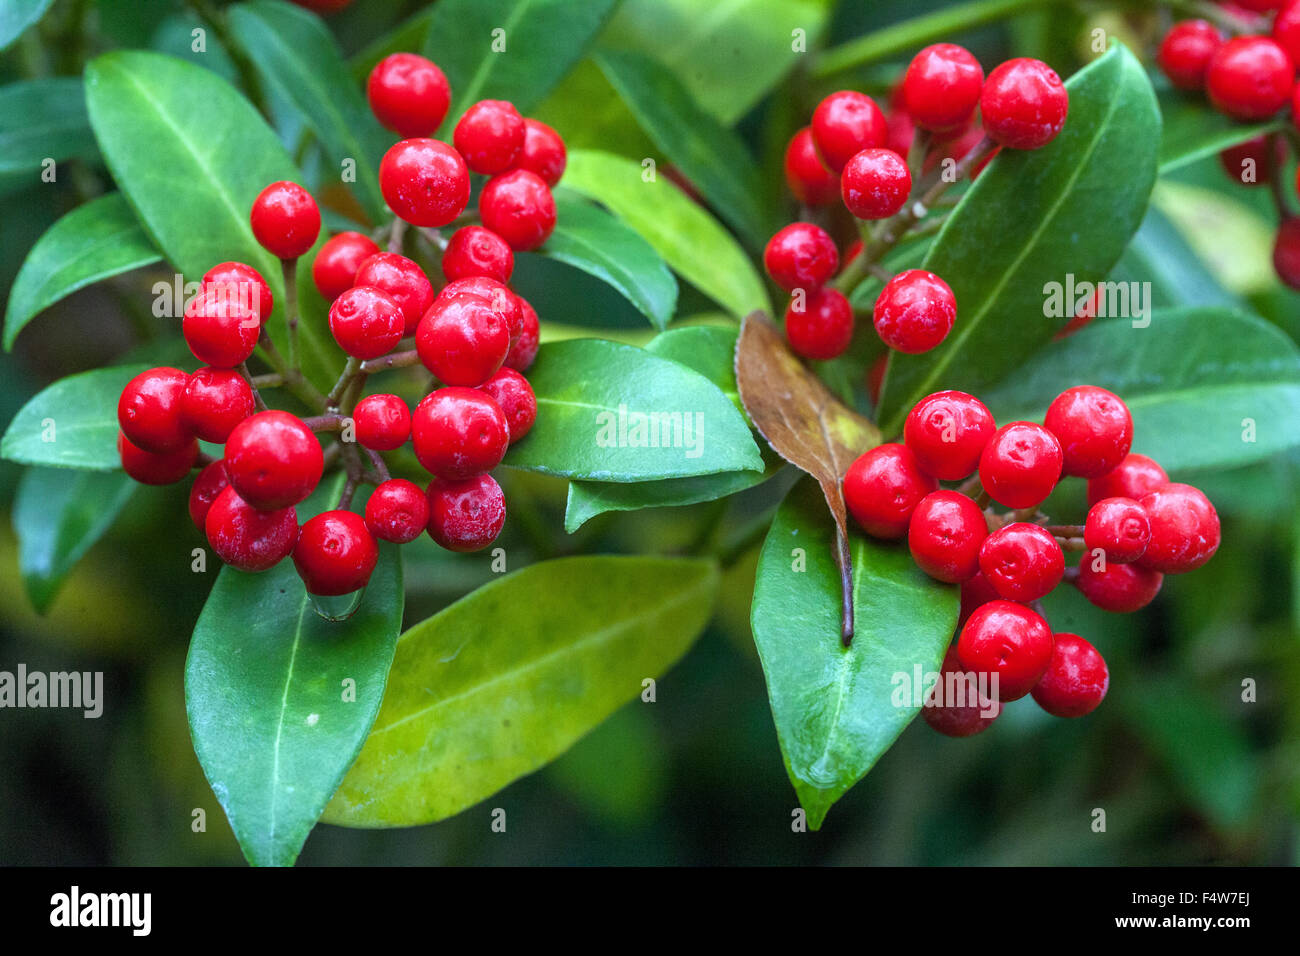 skimmia japonica flowers stockfotos skimmia japonica flowers bilder alamy. Black Bedroom Furniture Sets. Home Design Ideas